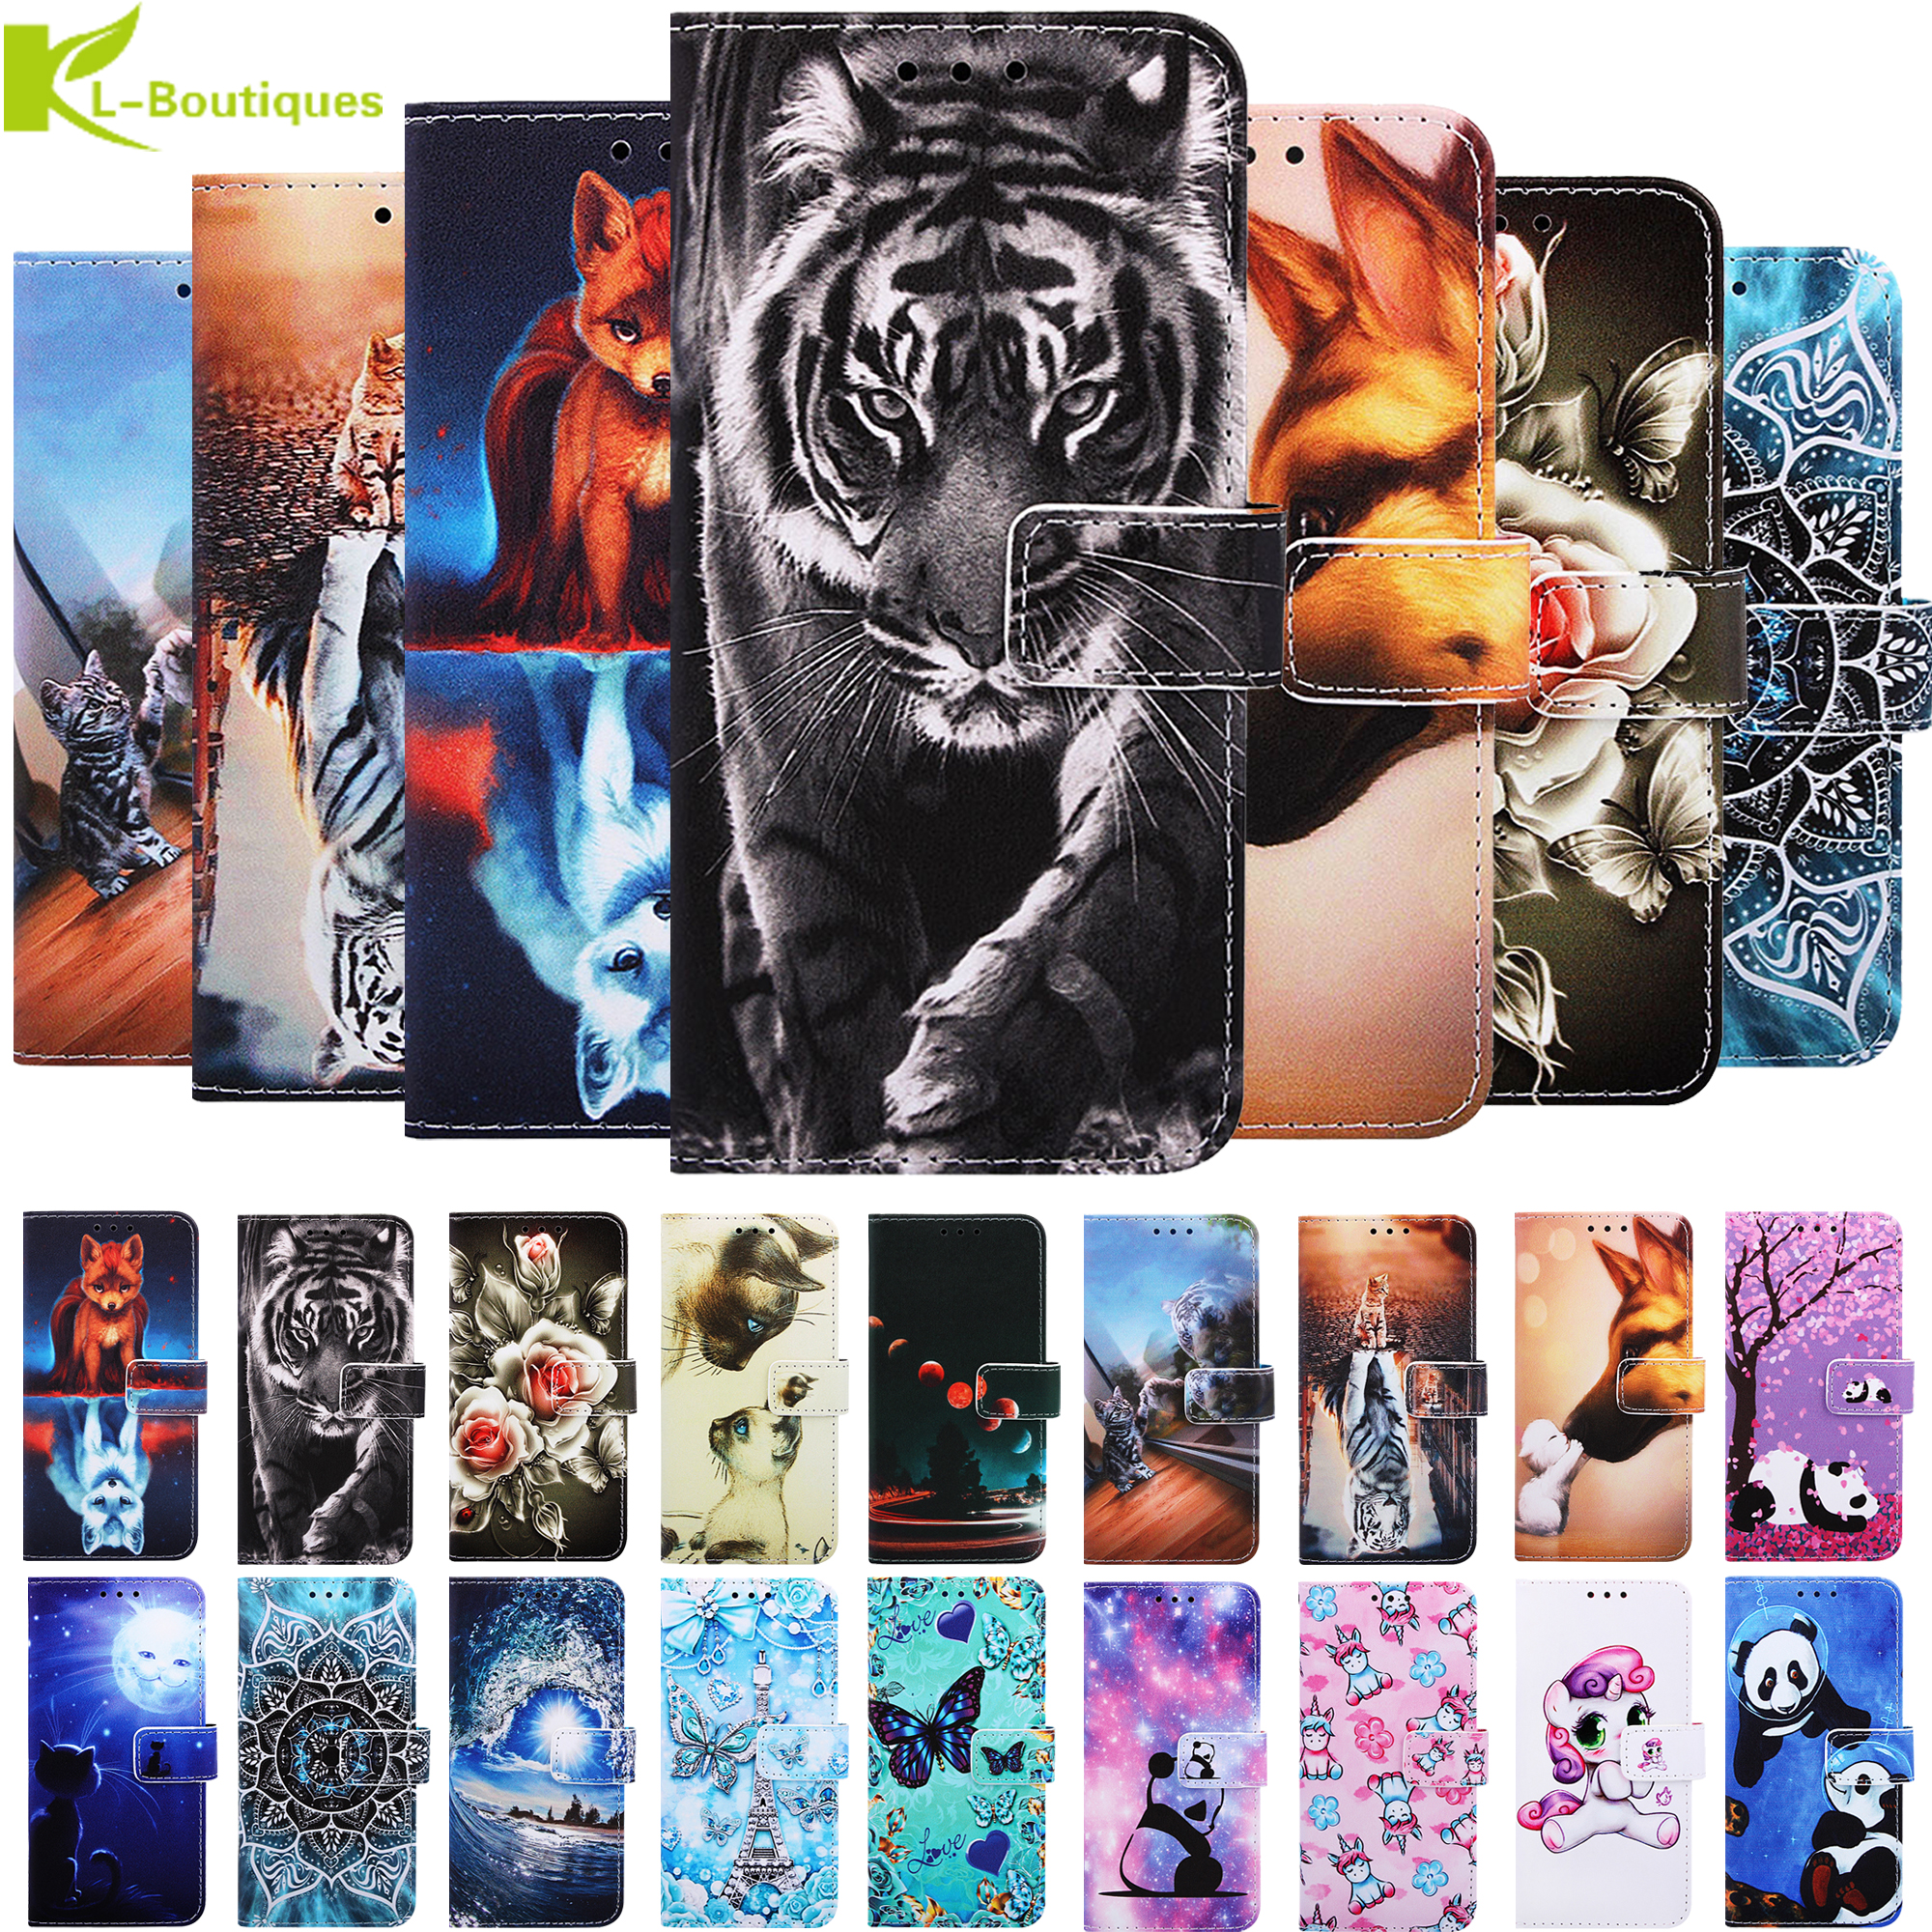 Magnetic Painted case on for Xiaomi Redmi 8a 7a K20 Pro Note 9S 8T 7 Pro Cases capa Xiomi Mi 9T 9 t Pro Book stand leather cover(China)